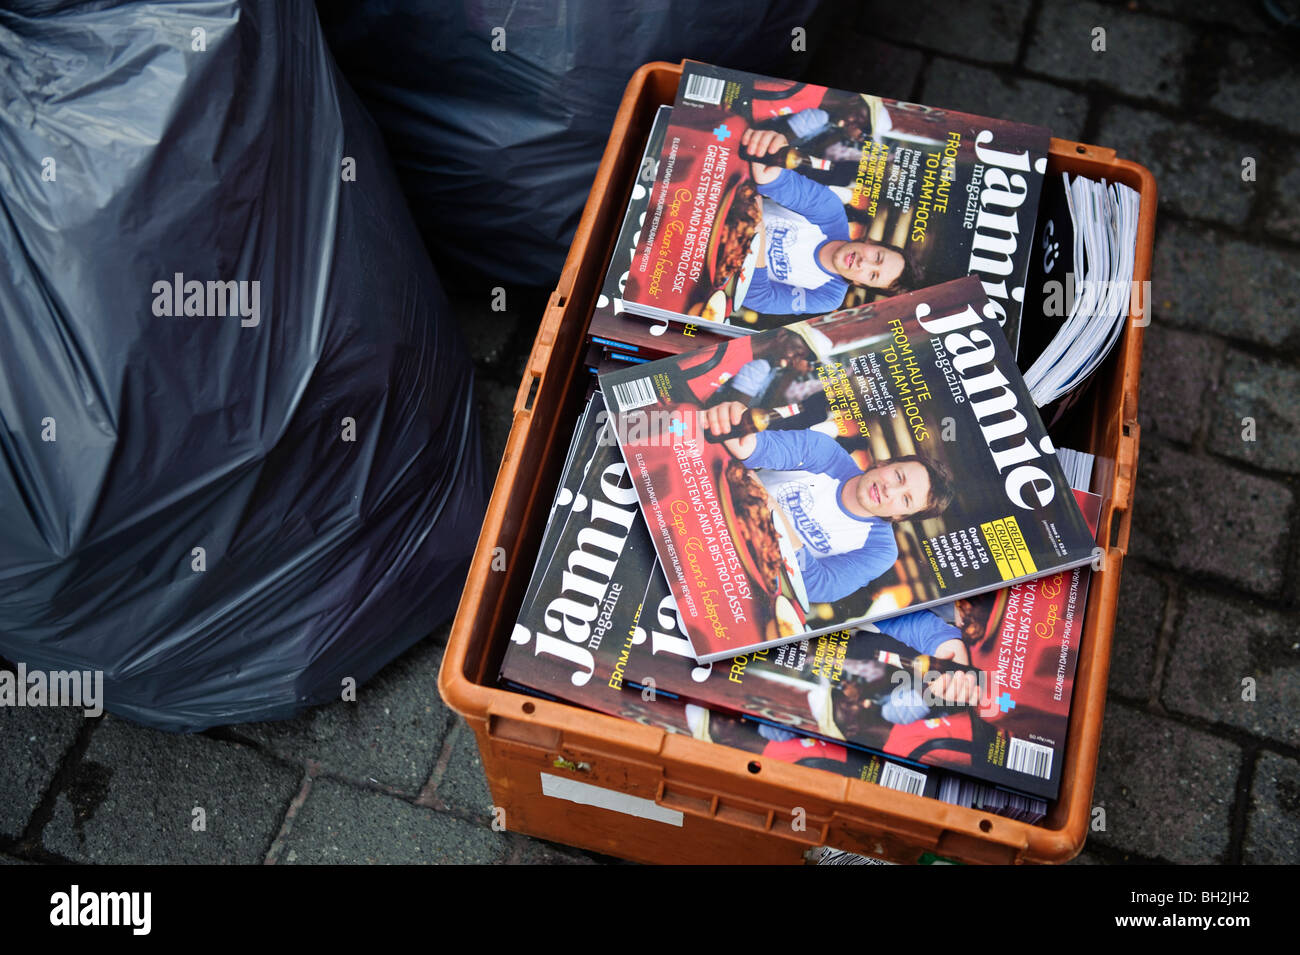 Unsold copies of JAMIE celebrity TV chef Jamie Oliver's cookery magazine, in a crate, awaiting return for pulping, - Stock Image